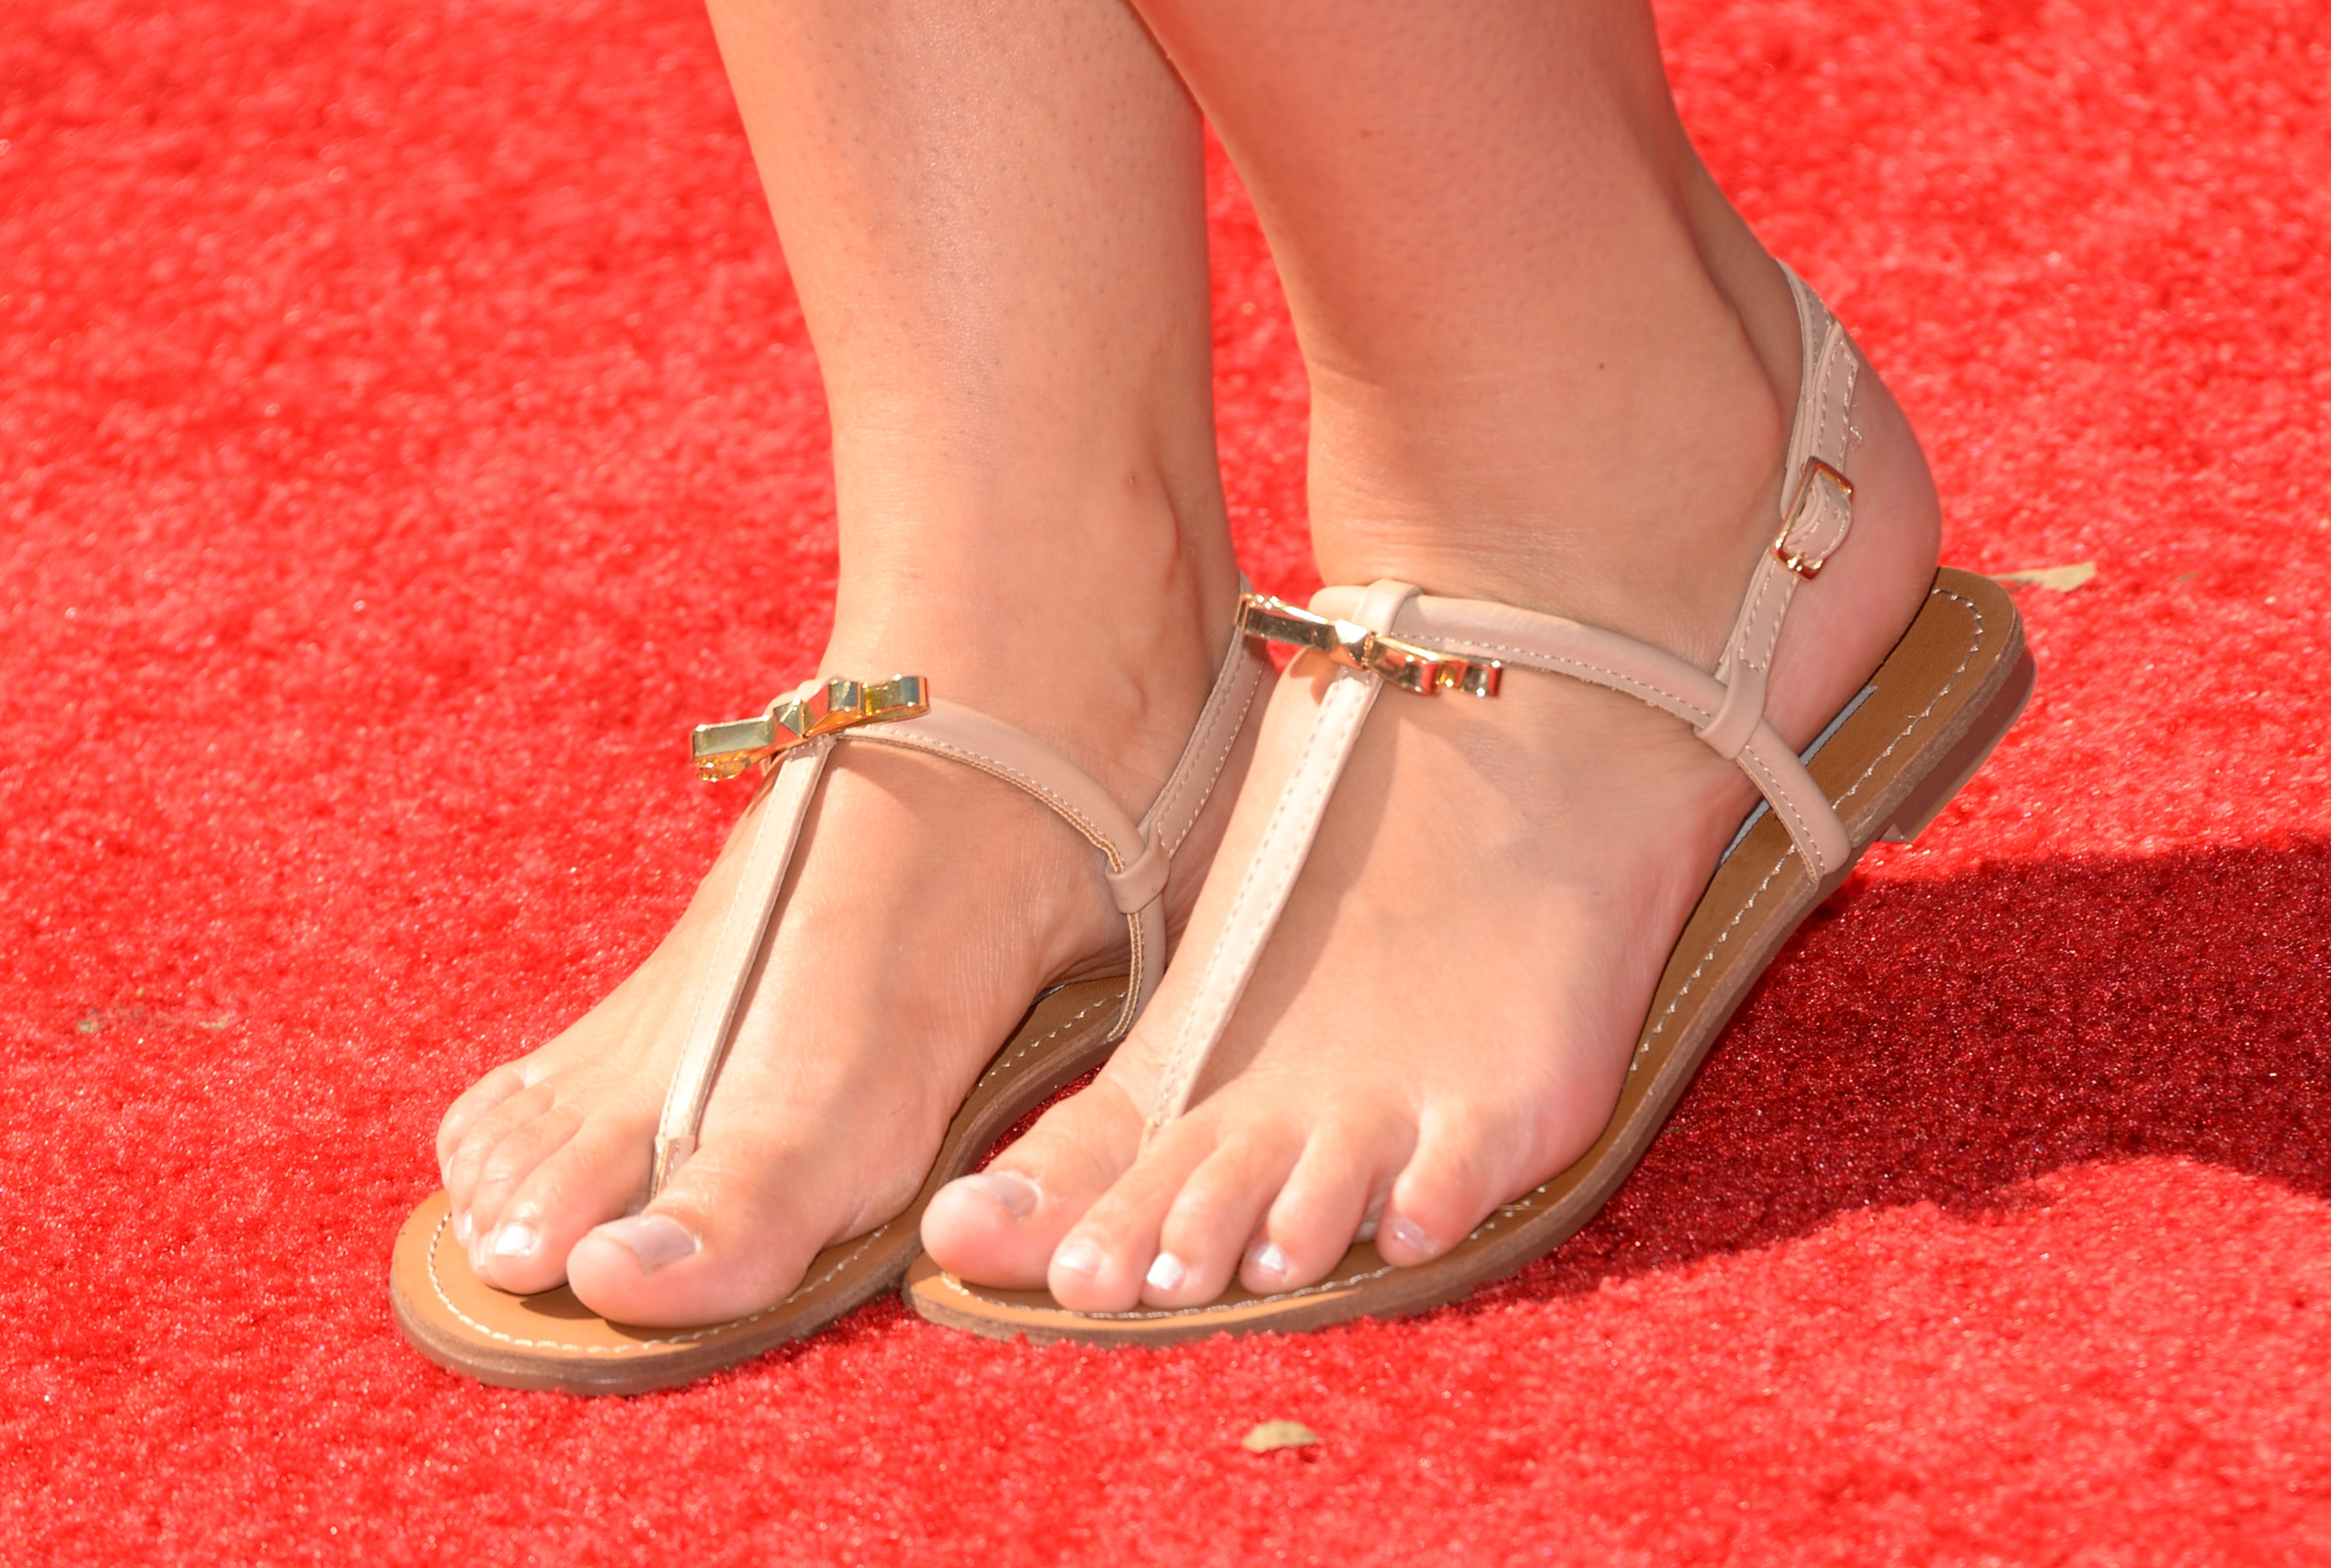 5a25849f42978 8 Ways to Make Sandals More Comfortable